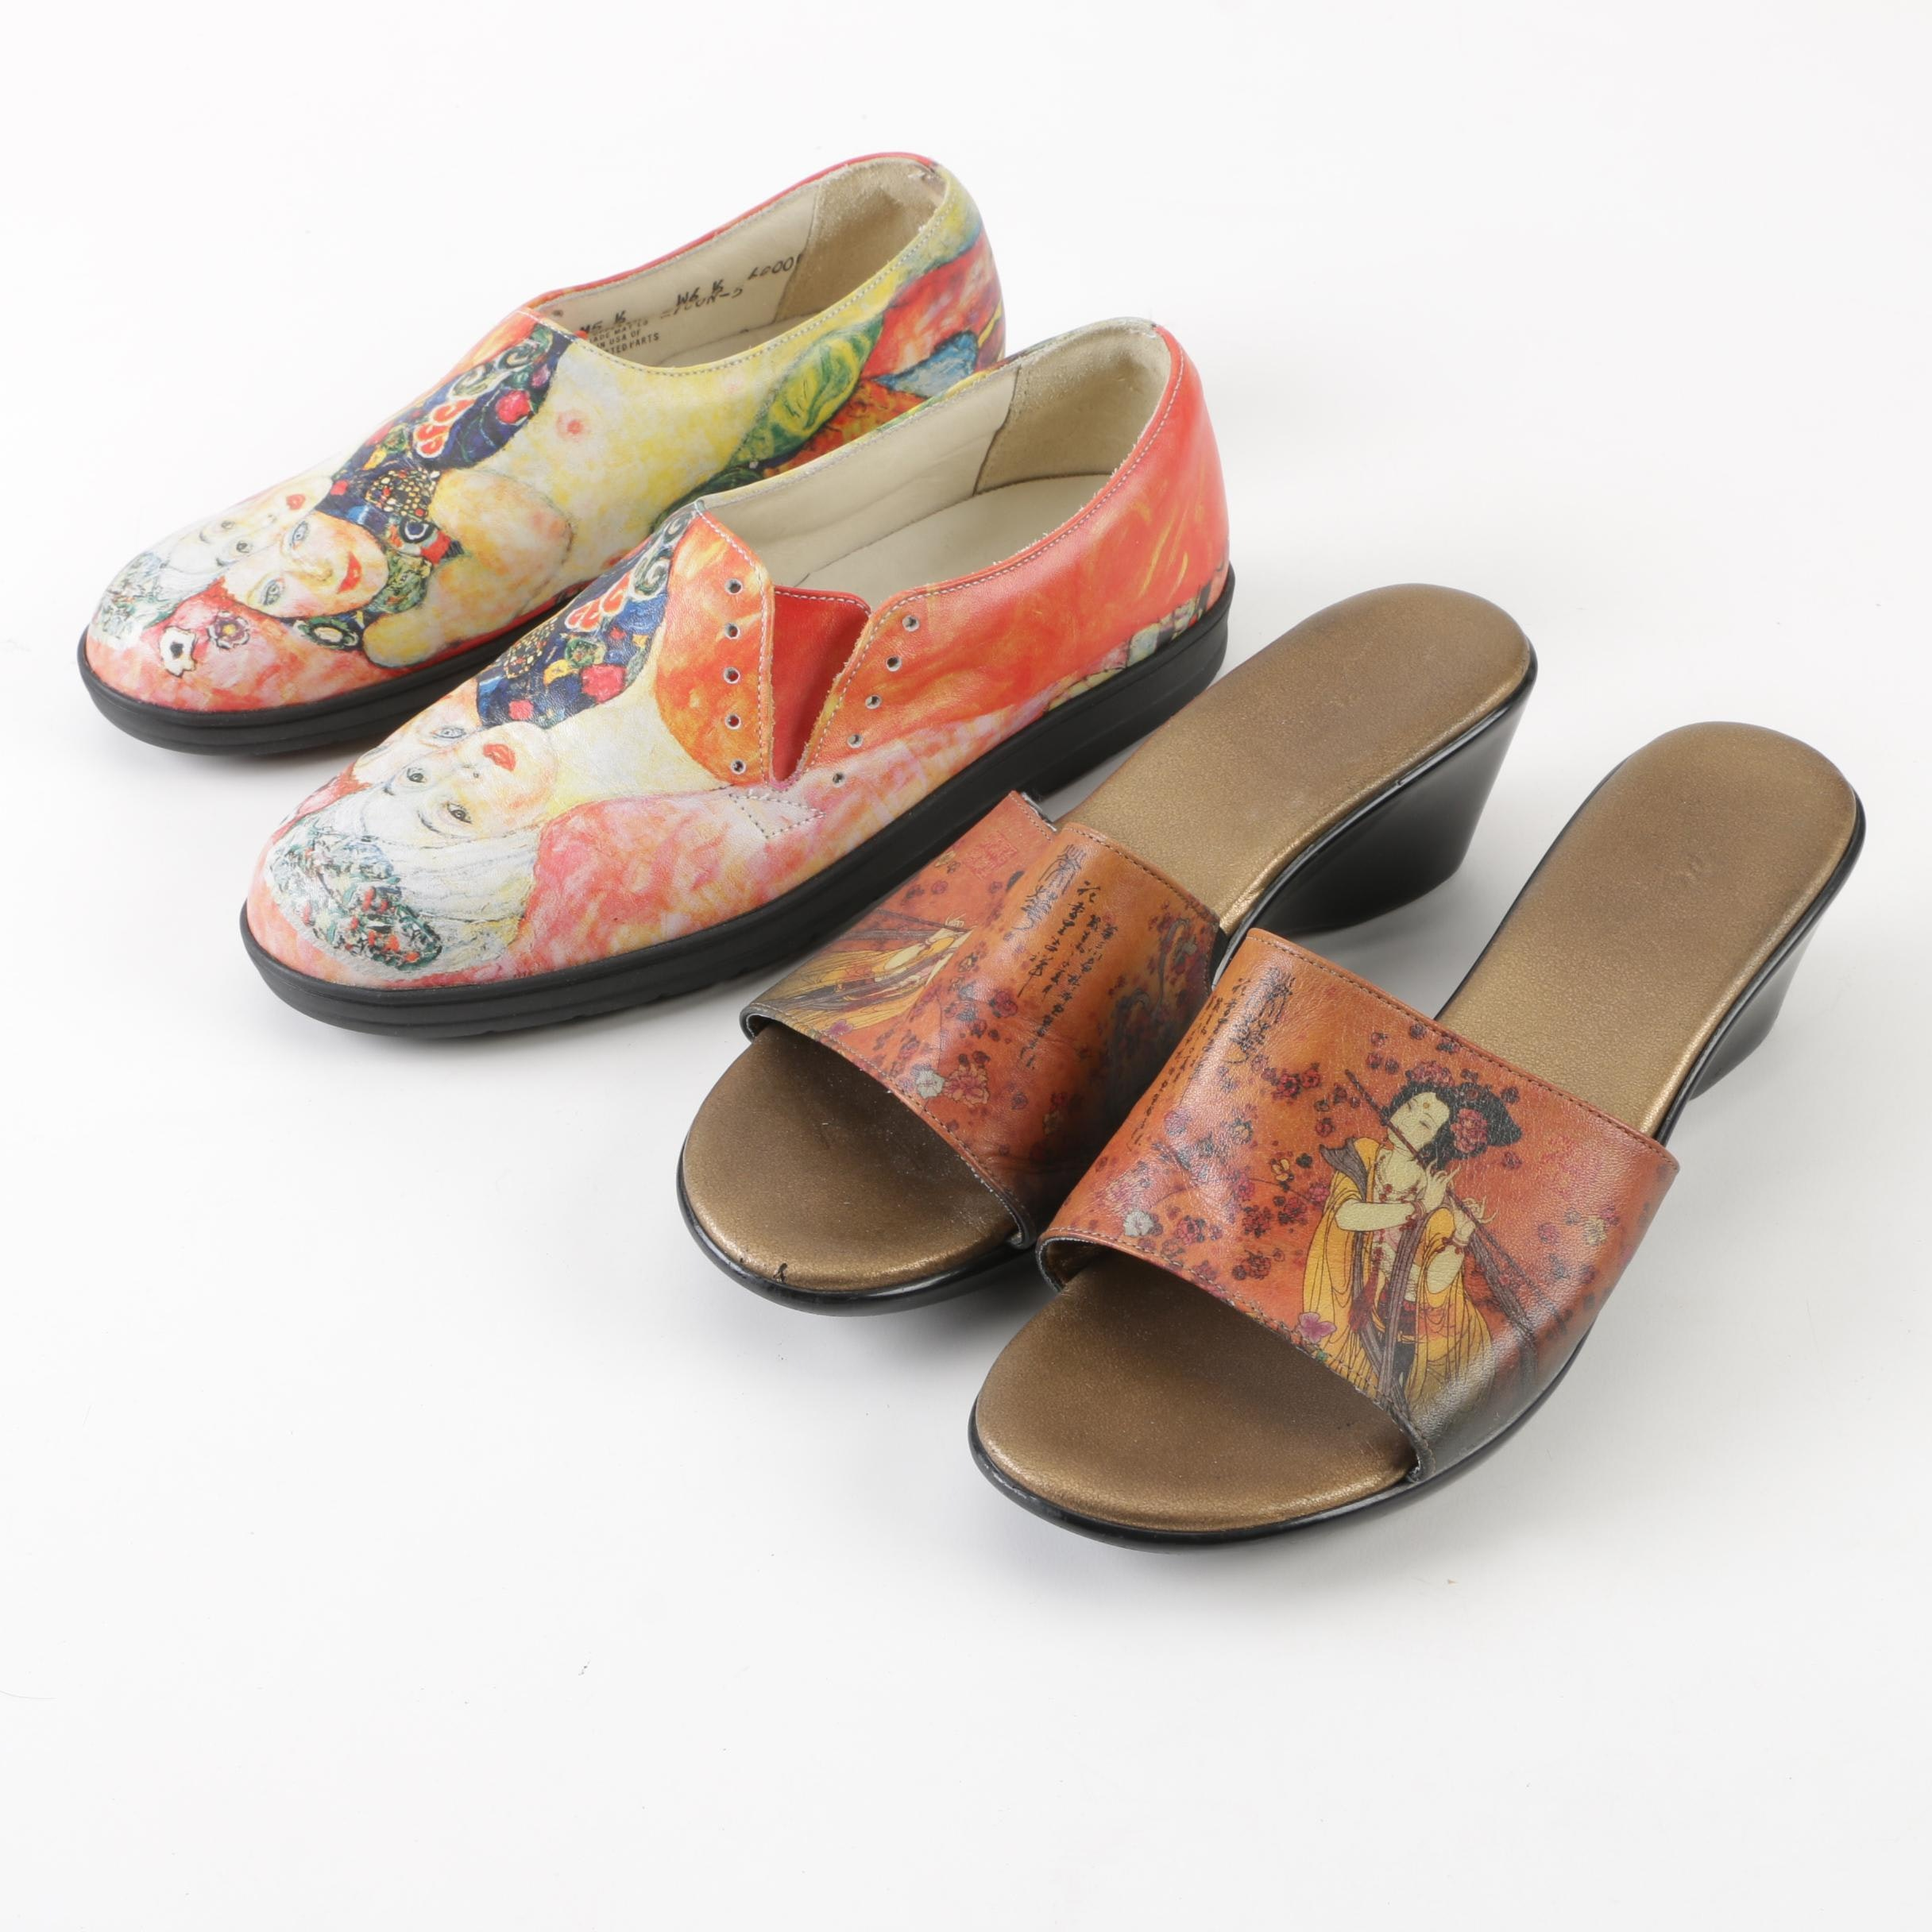 Icon Printed Leather Shoes and Sandals